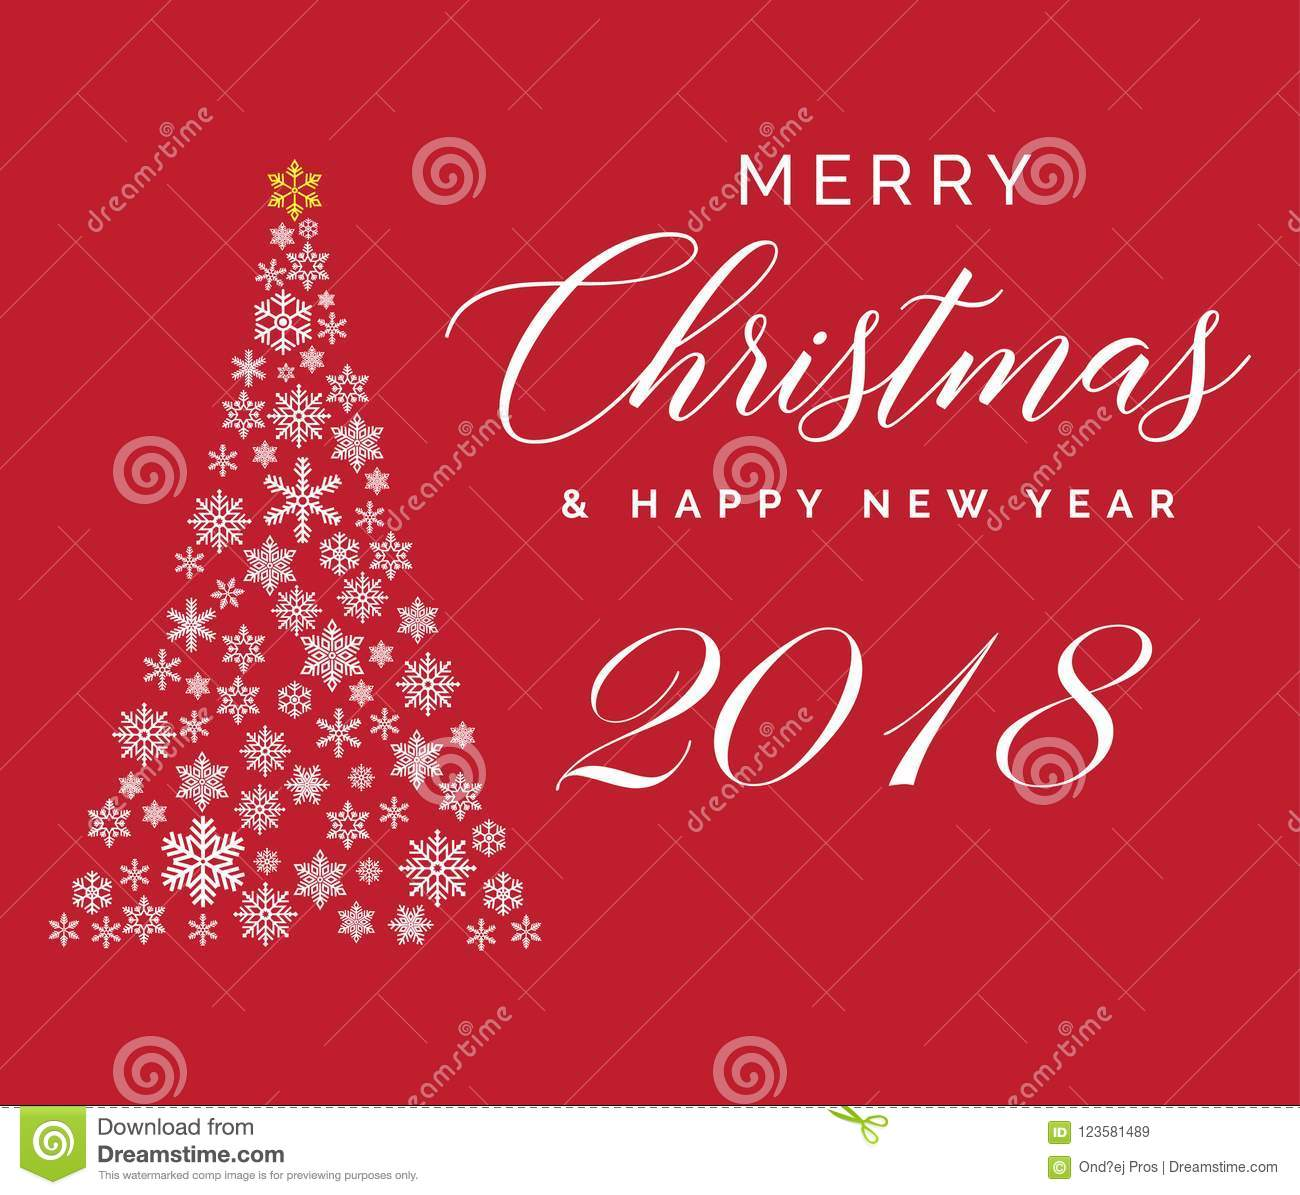 download merry christmas and happy new year 2018 lettering template greeting card or invitation